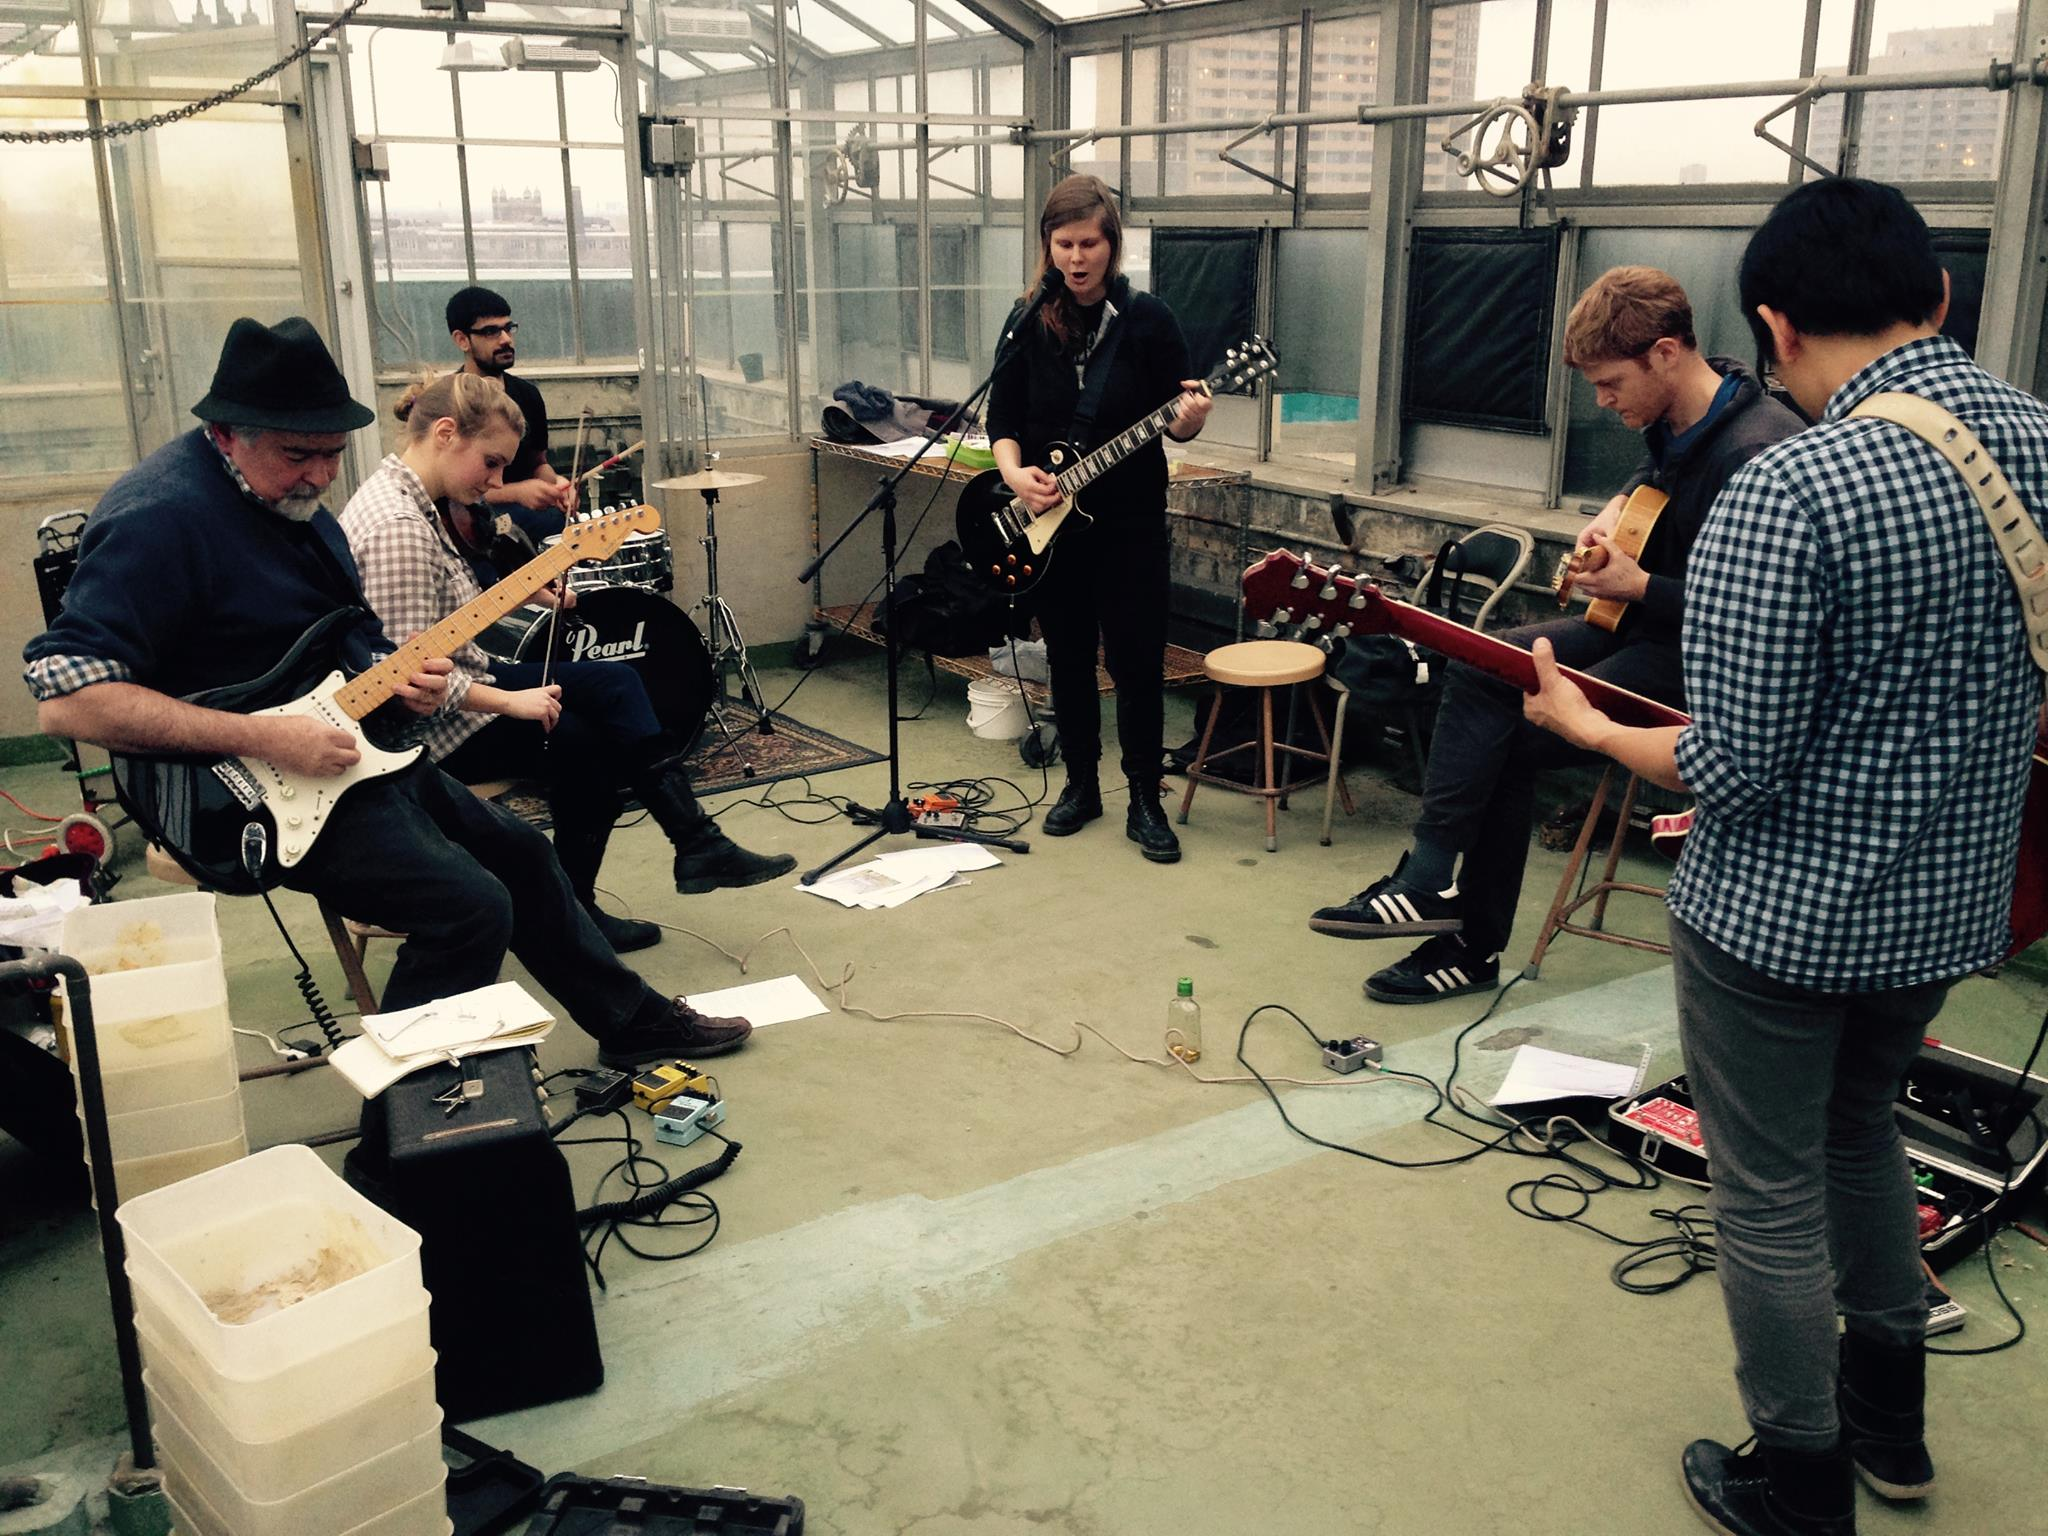 Art jamming with the greenhouse band.